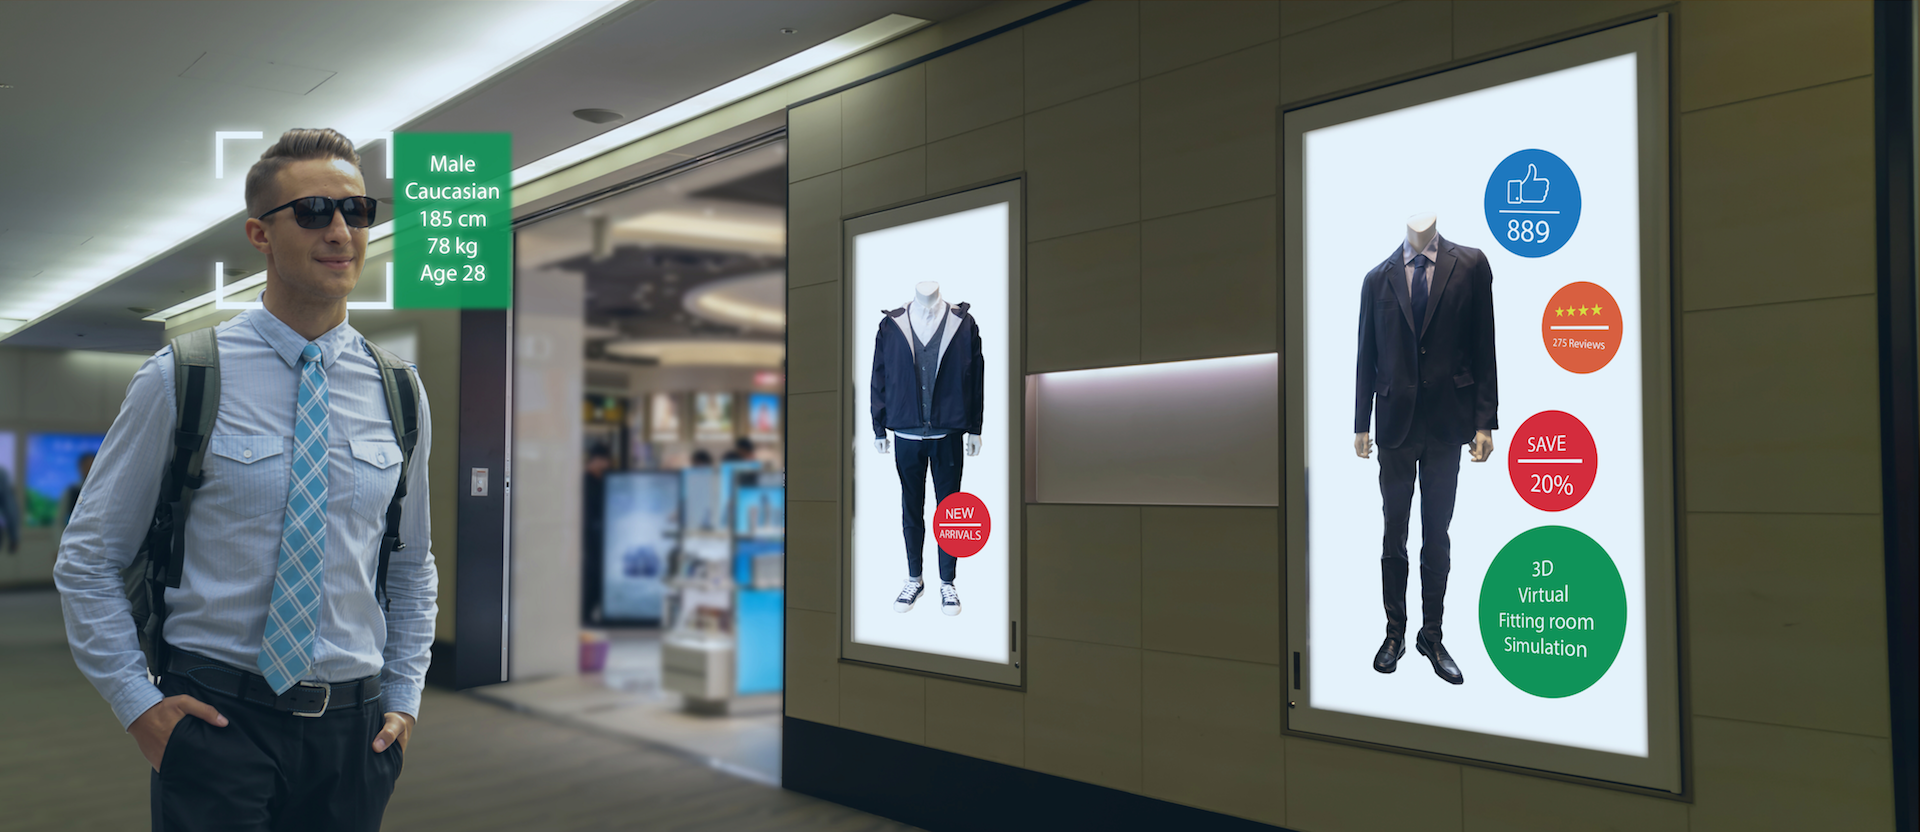 The Latest Digital Signage Technology and Trends